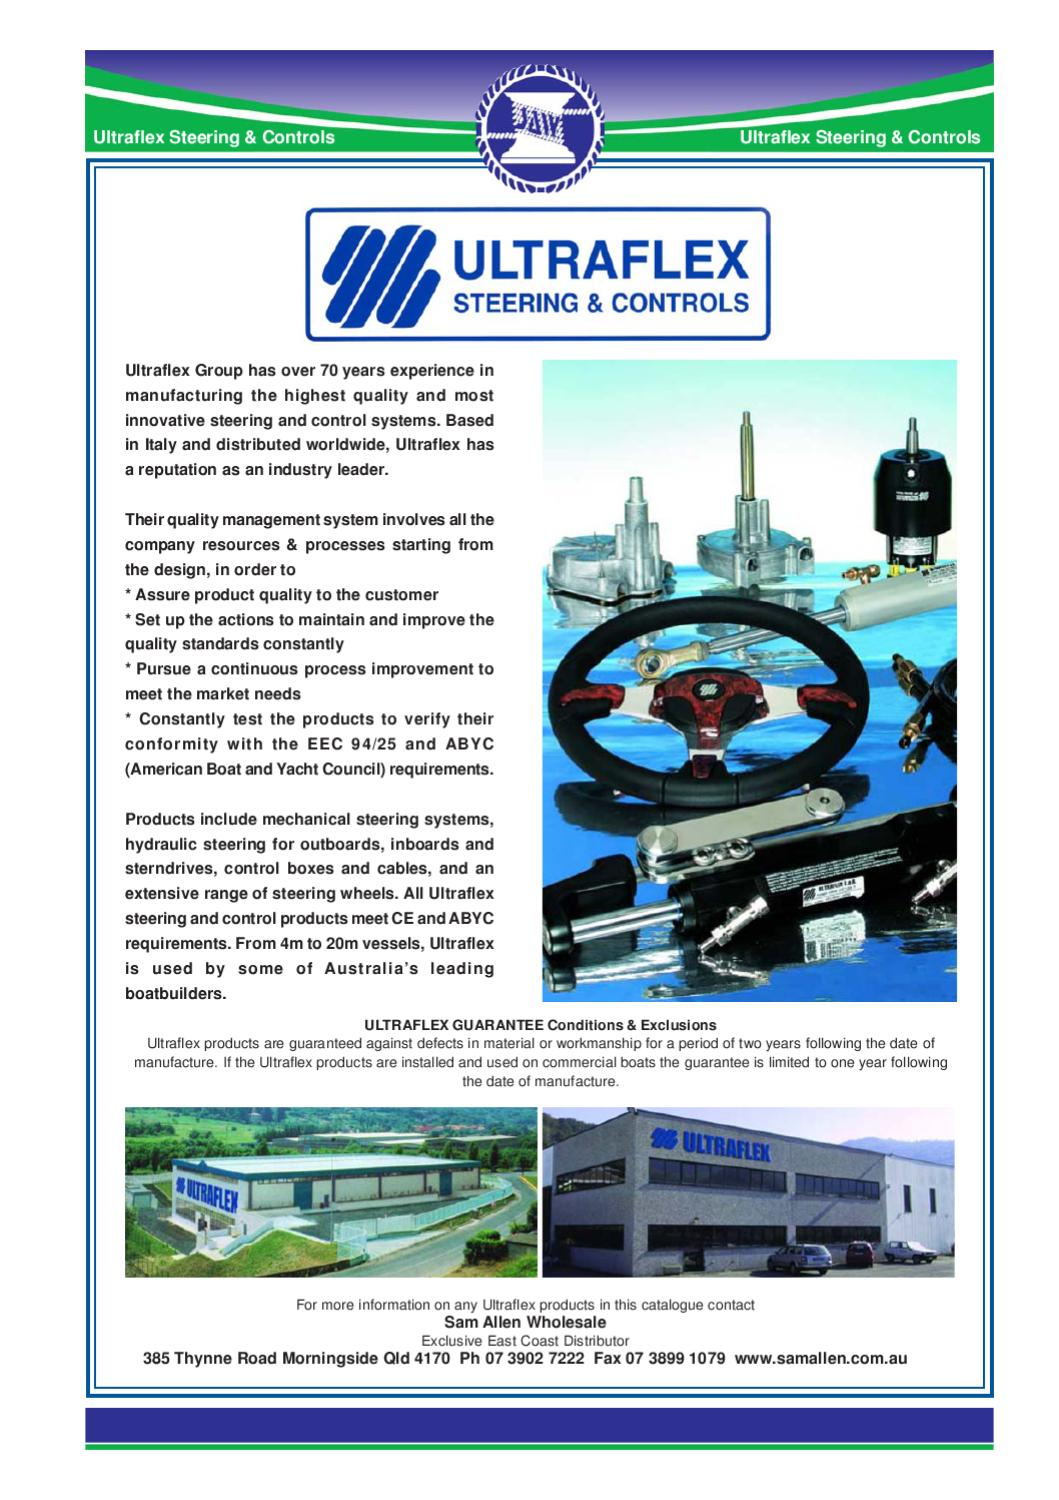 Sam Allen Boat Steering Ultraflex by Myboatingshop com - issuu